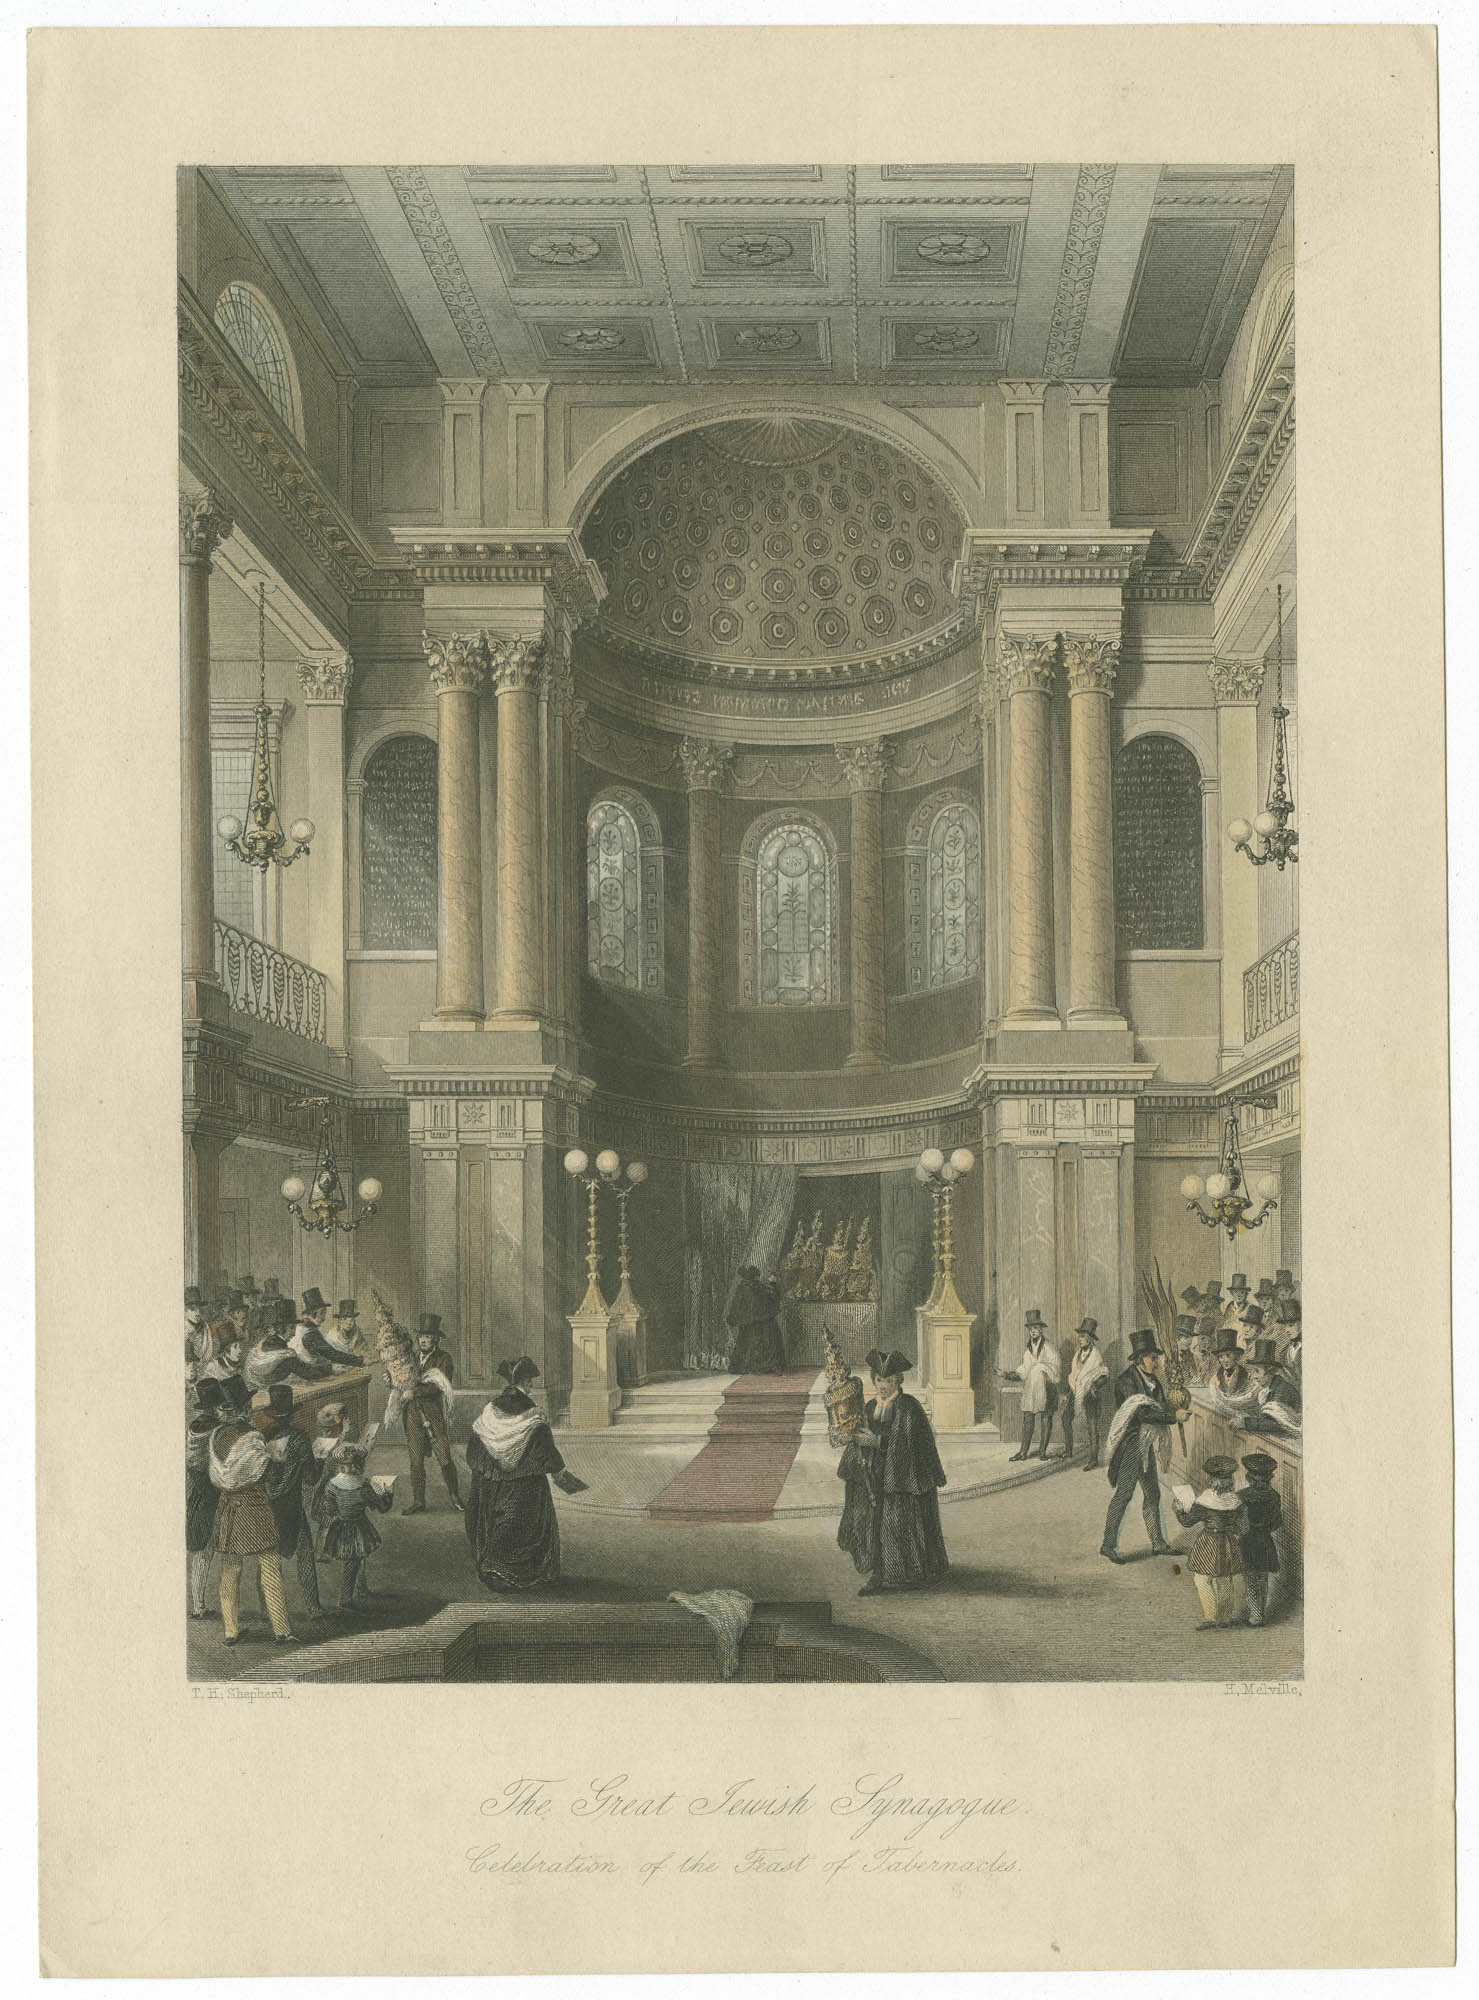 The Great Jewish Synagogue. Celebration of the Feast of Tabernacles.